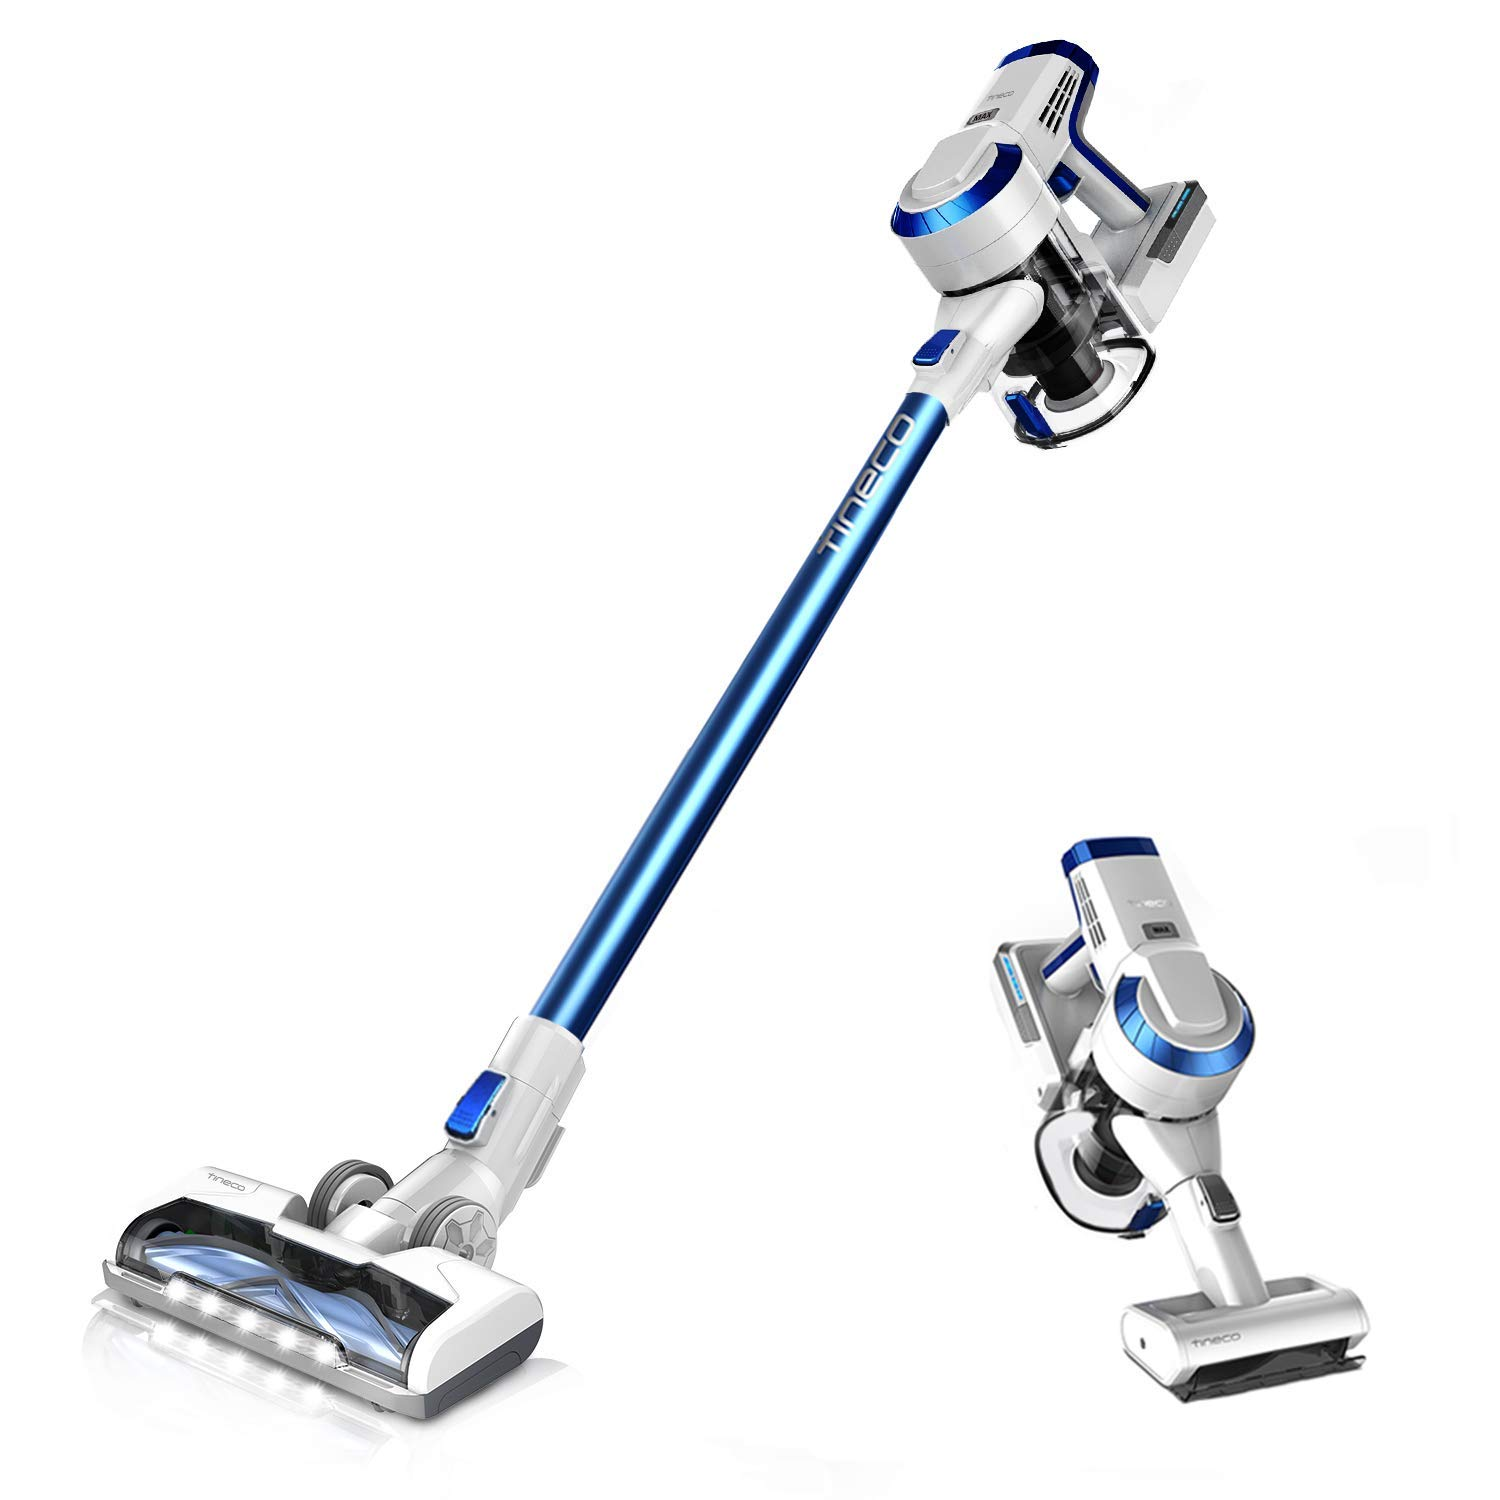 fd89599d72b ... Tineco A10 Hero Cordless Stick Vacuum Cleaner. The APEX DuoClean Zero-M  Powered Lift-Away Upright Vacuum from Shark is a